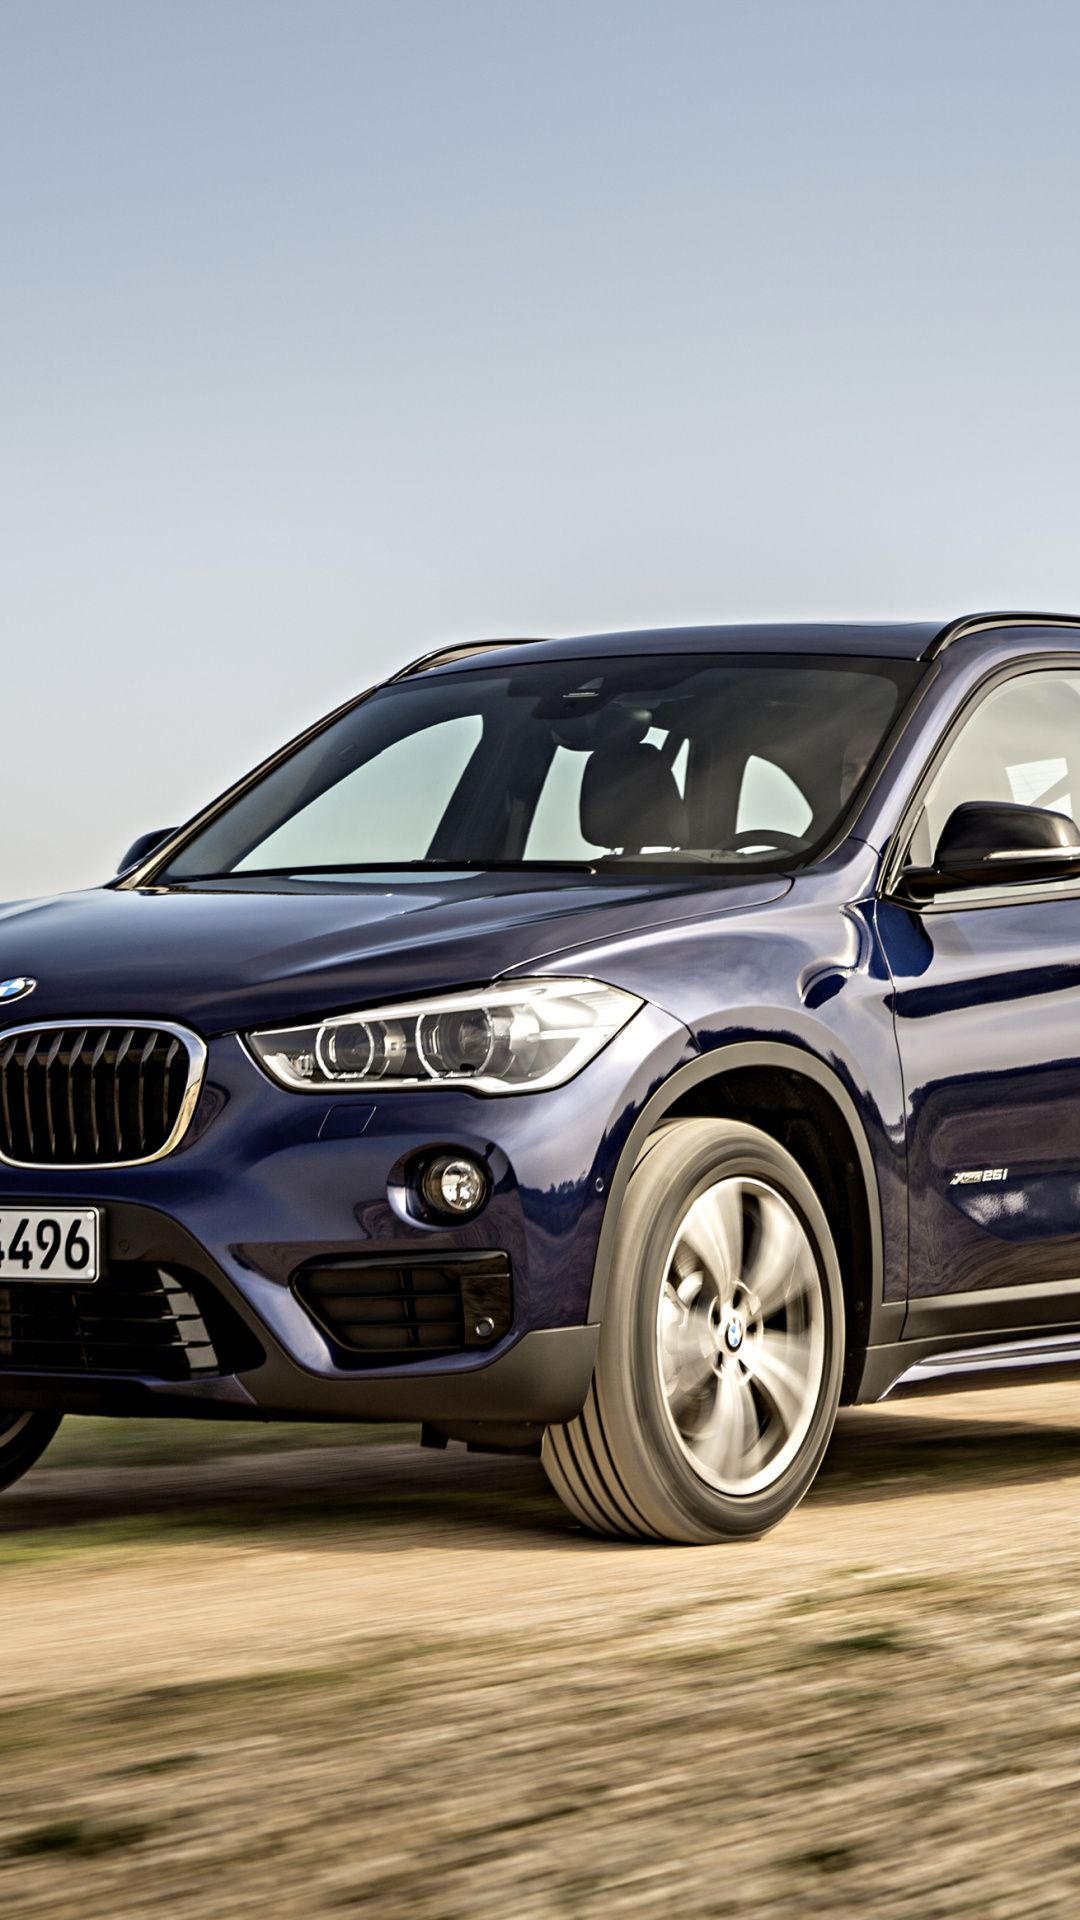 Bmw X1 Iphone Wallpapers Wallpaper Cave